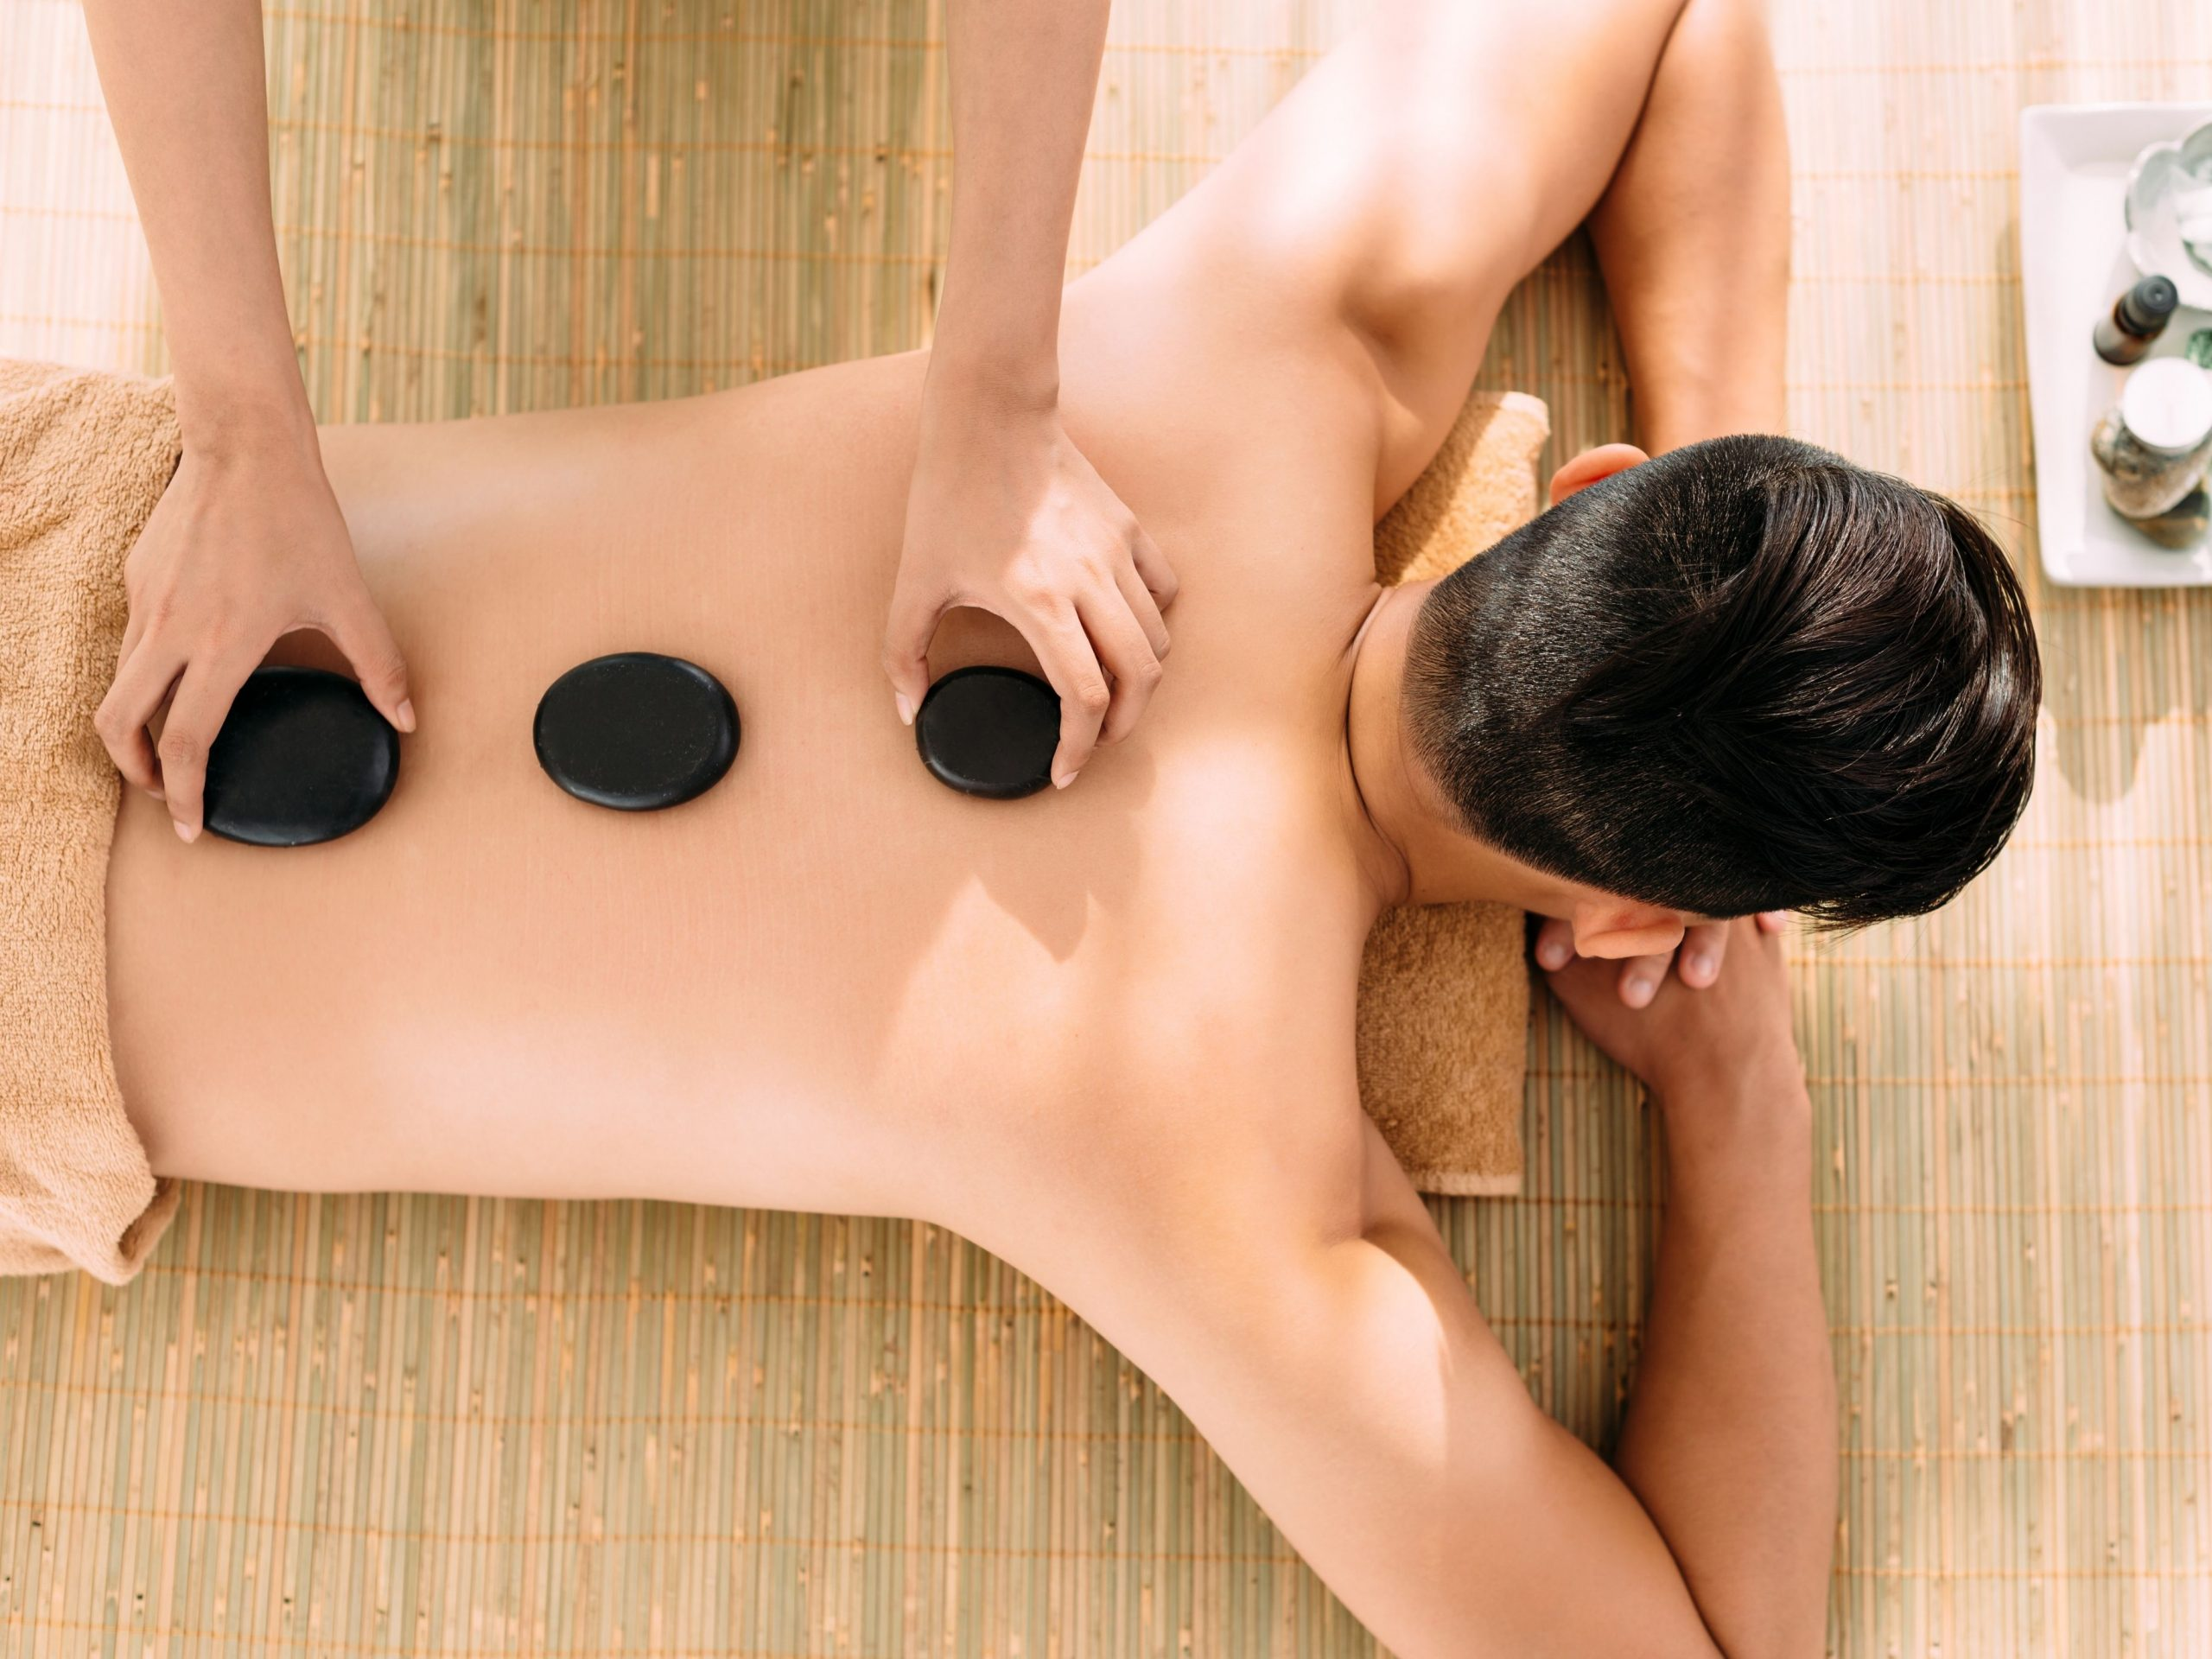 Hot stone massage: 8 Common questions about it